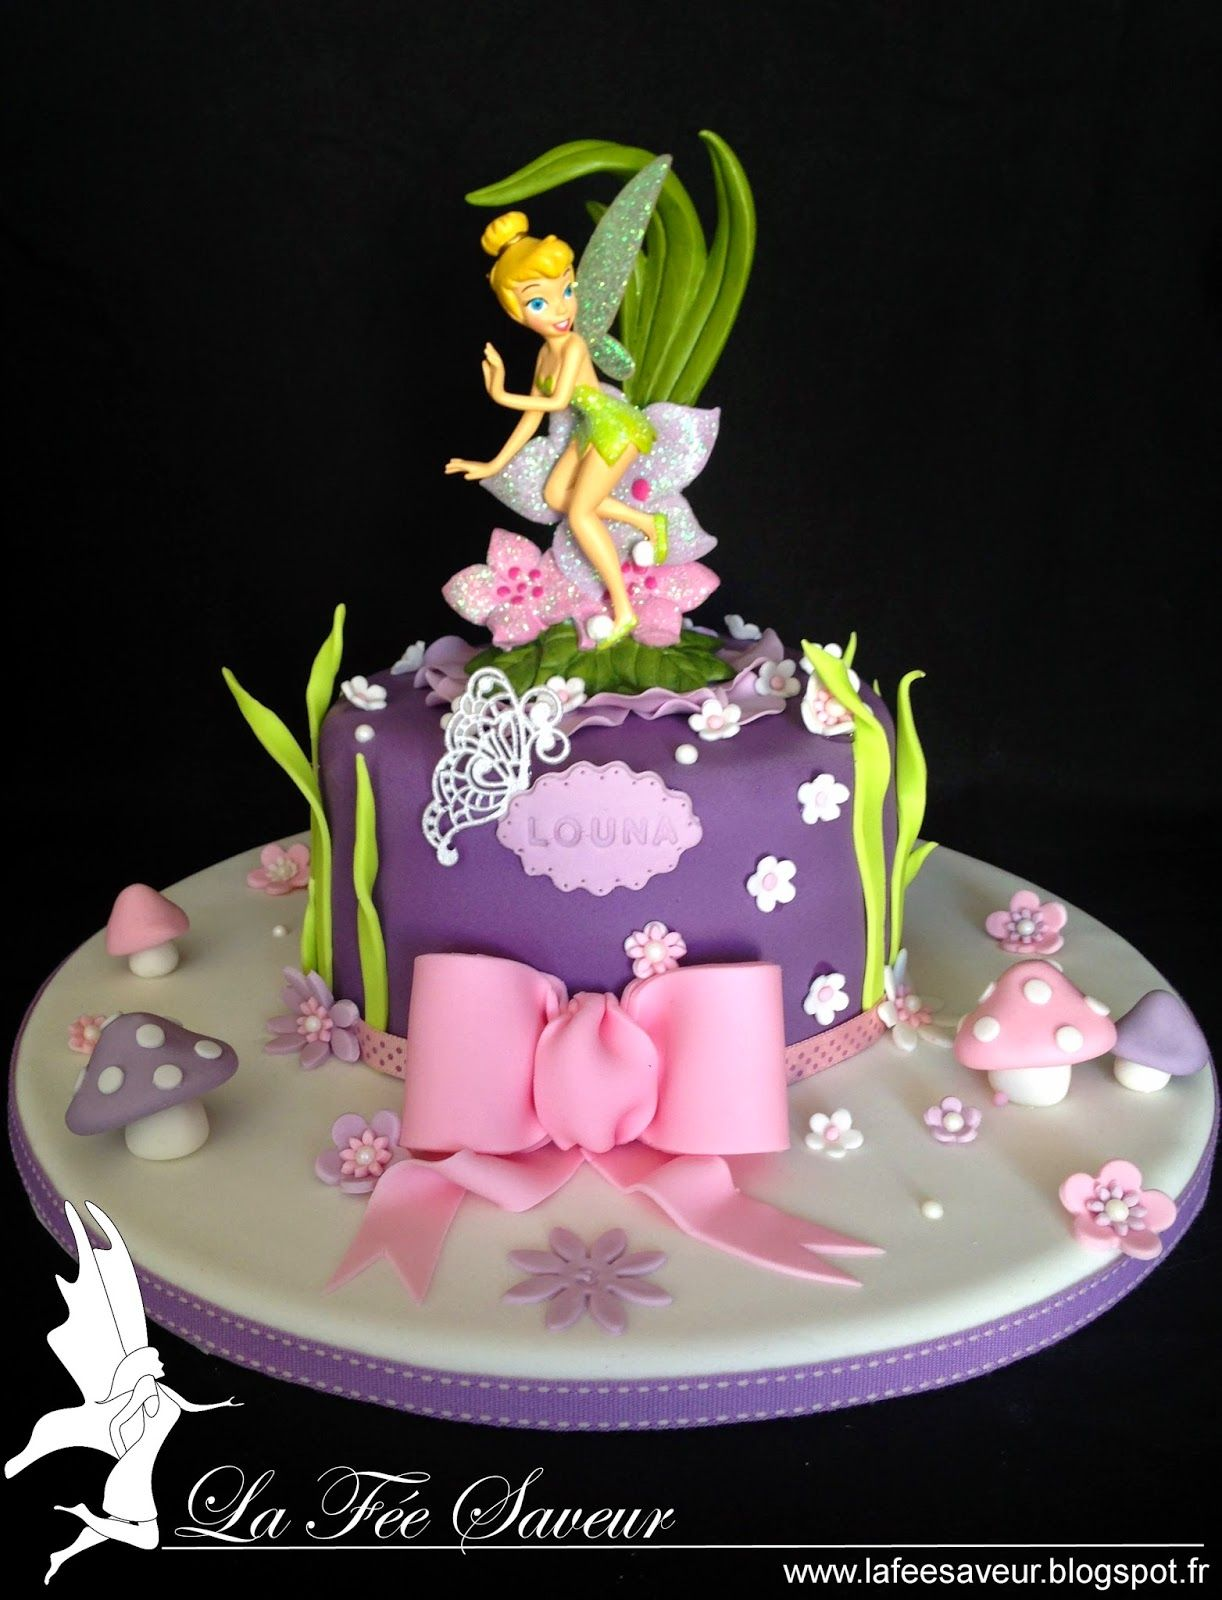 La Fee Sucree Cake Design